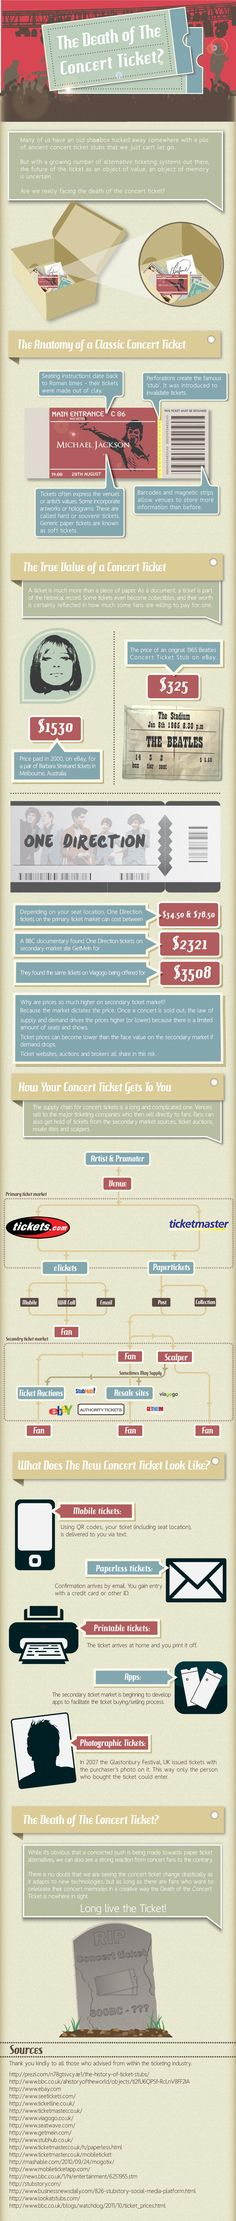 Is it the Death of the Concert Ticket? Concert Ticket InfoGraphic via @neomamilian